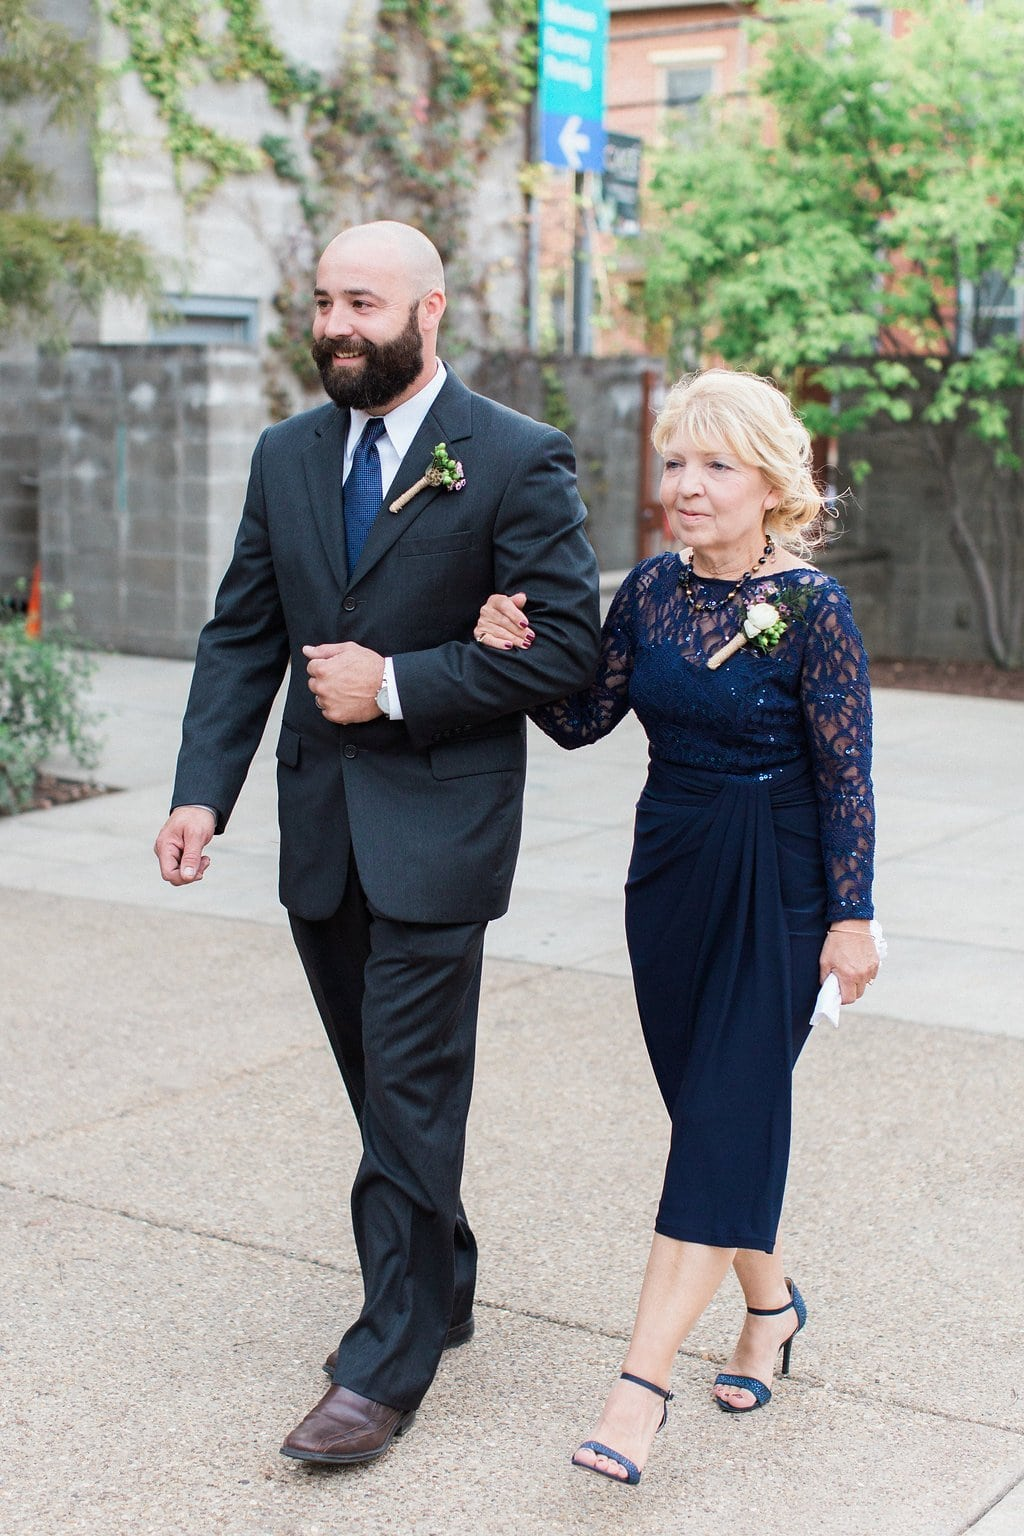 Groomsman walking mother of the bride wearing a blue dress down the aisle